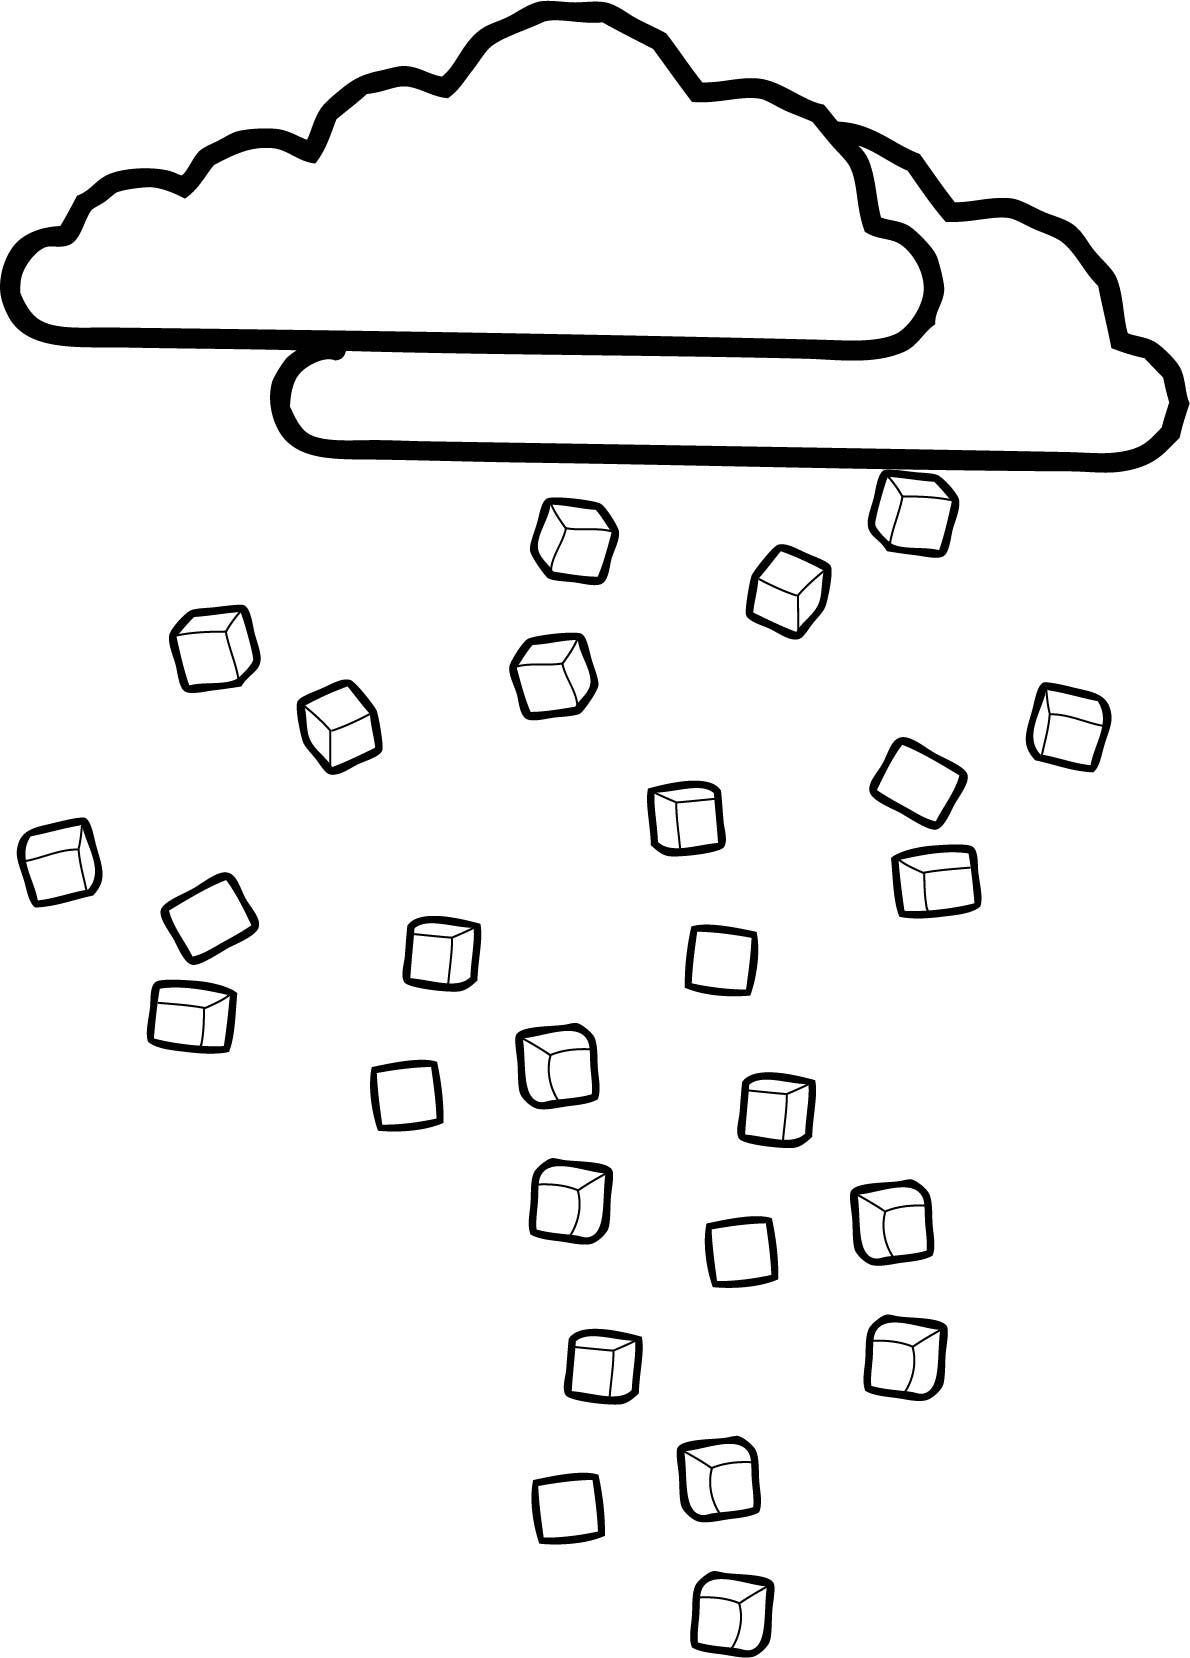 Cool Cloudsice Coloring Page